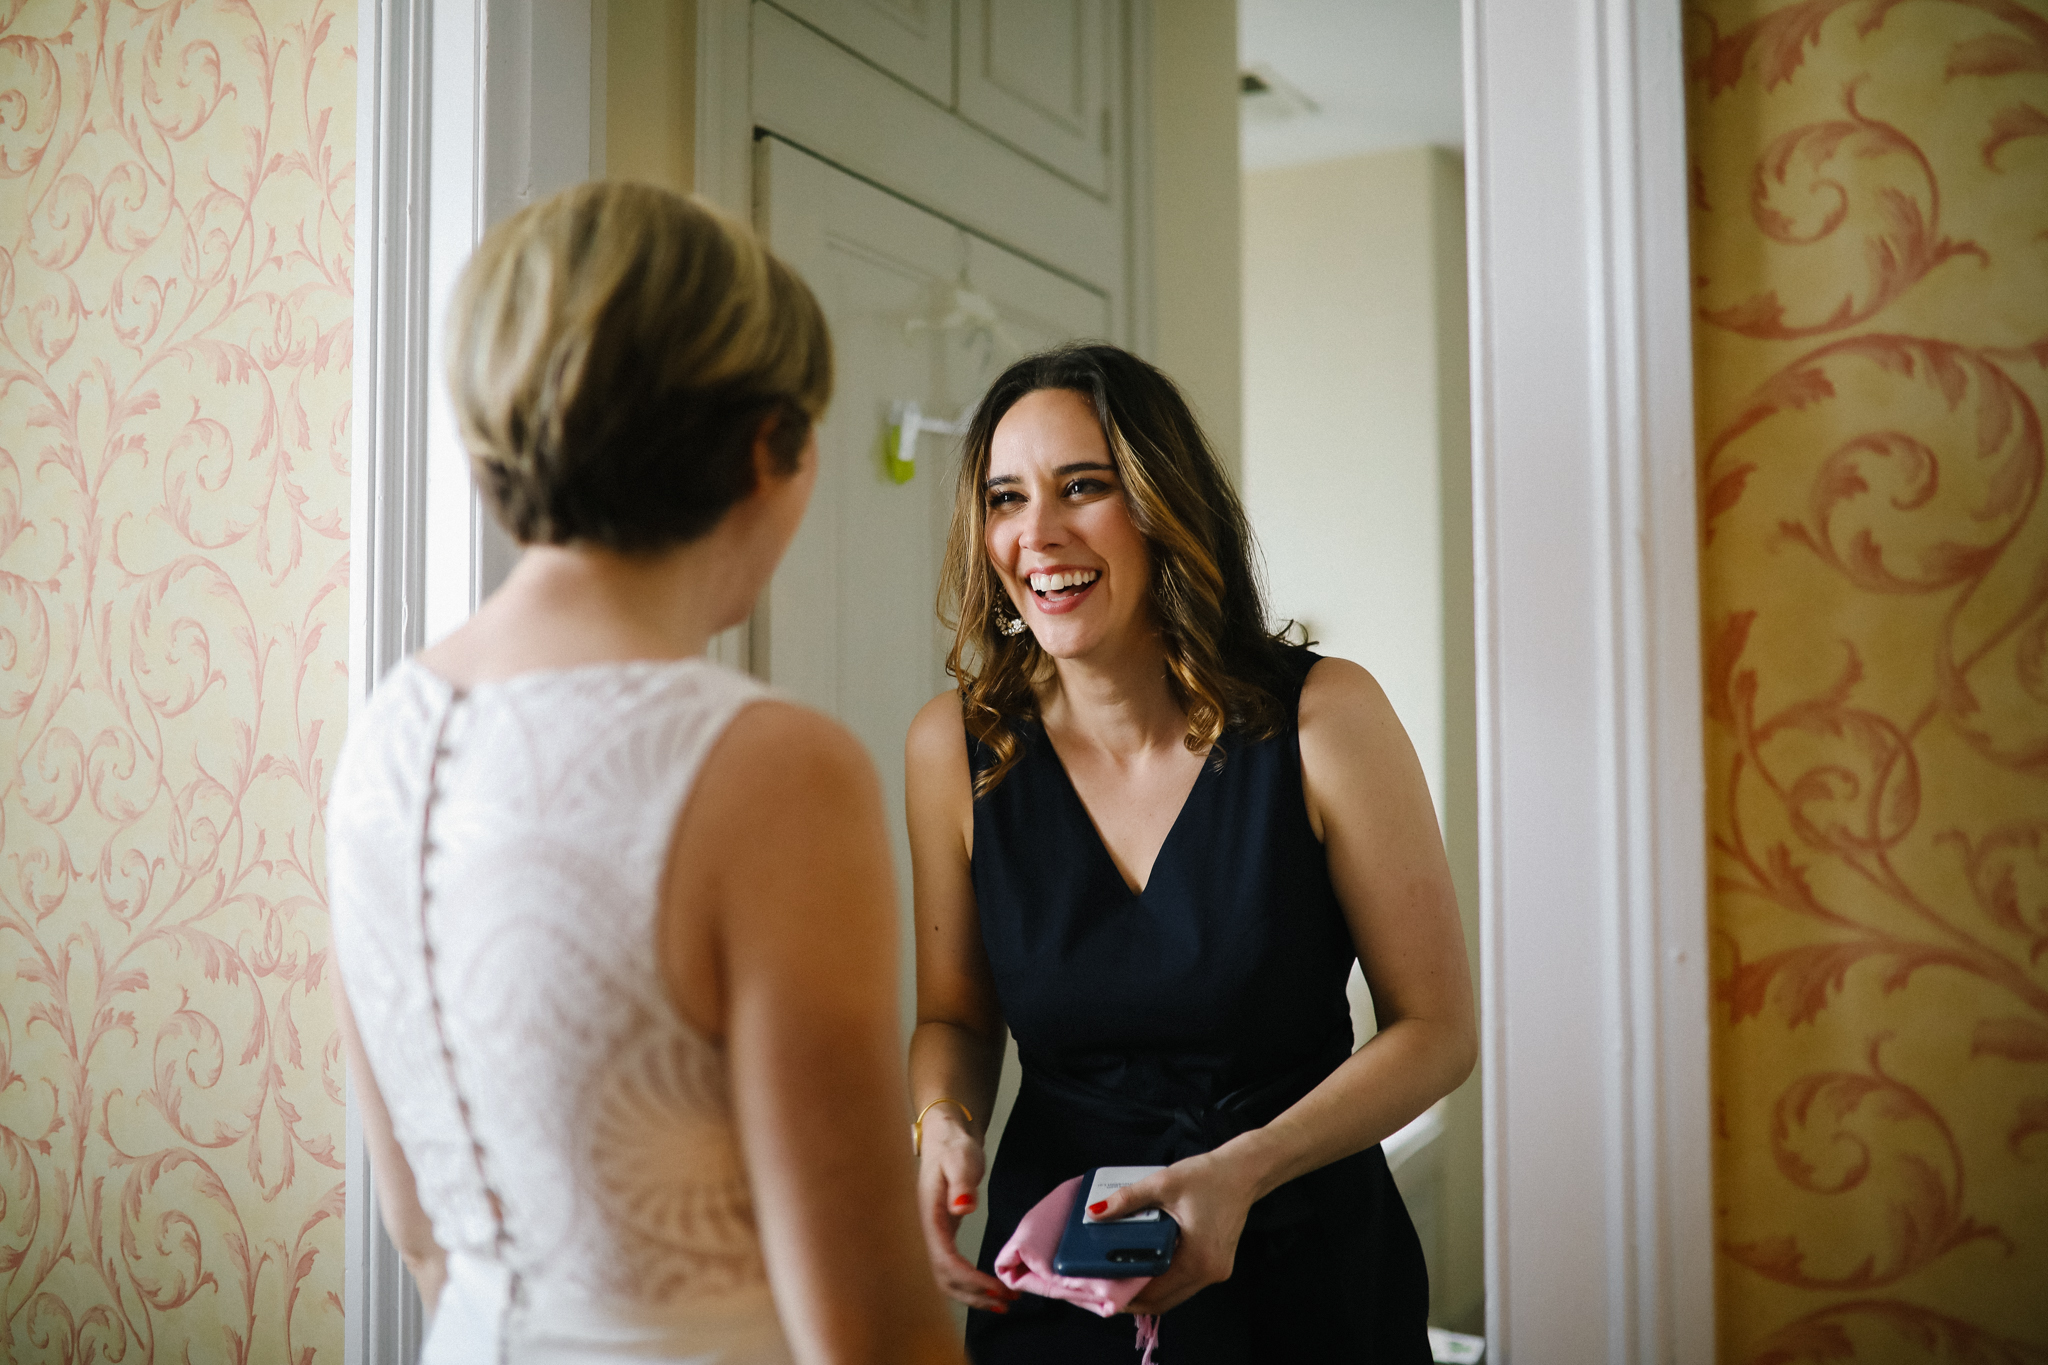 cook_wedding_richmond_virginia_rebecca_burt_photography-6.jpg